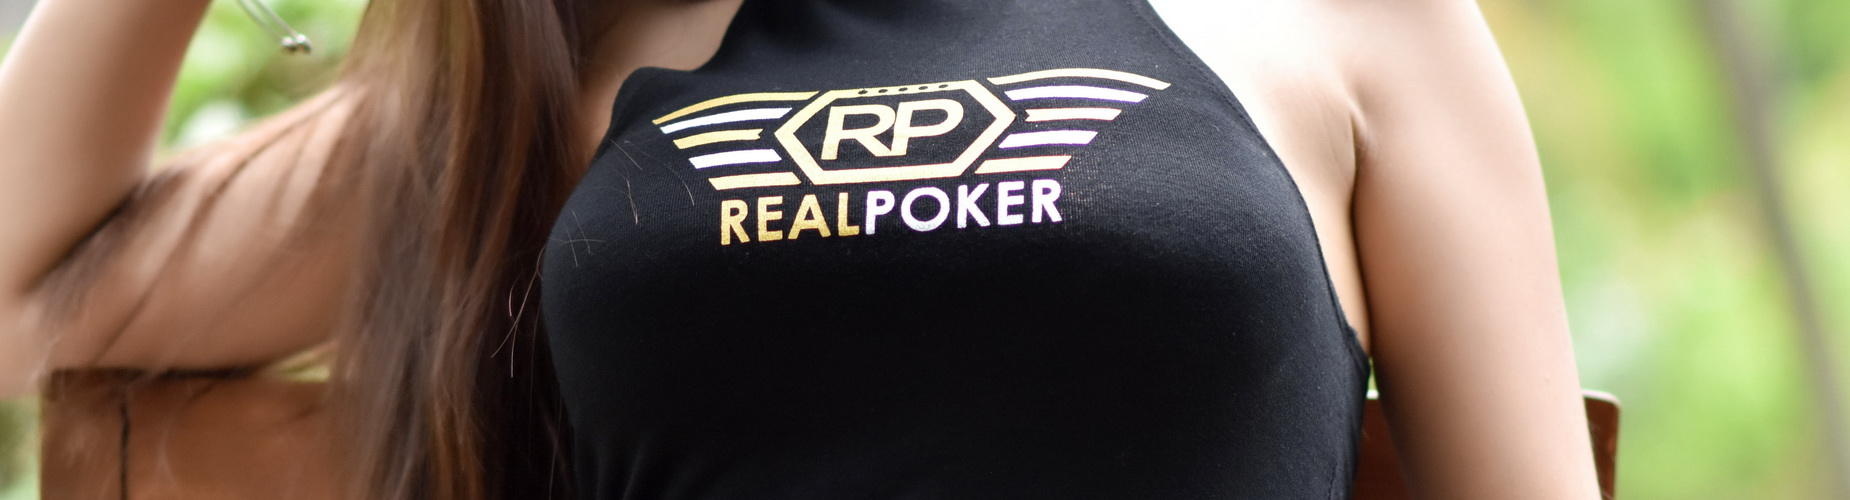 Top Real Poker Tops